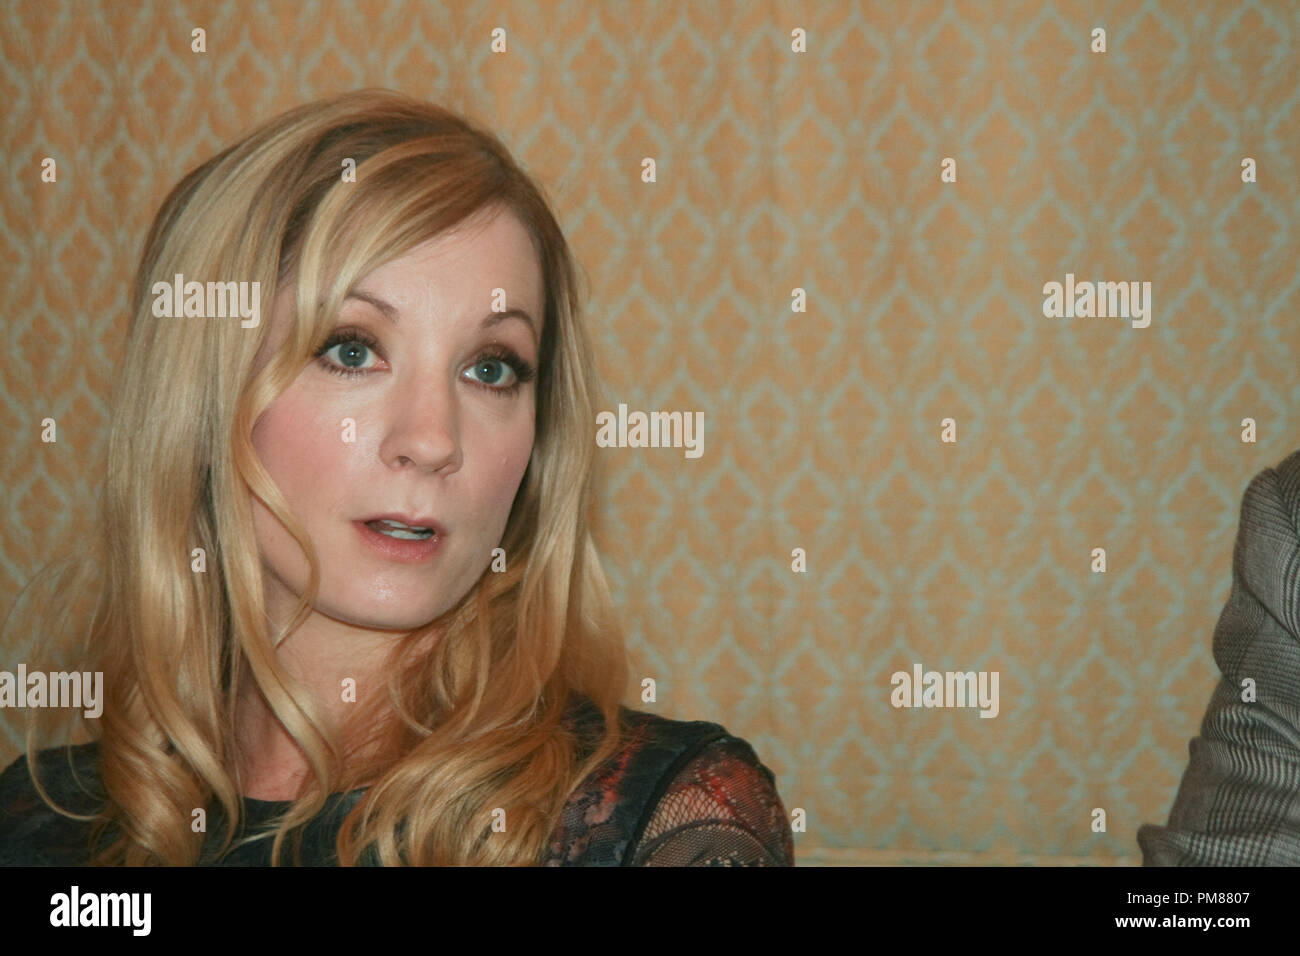 Joanne Froggatt   'Downton Abbey'  Portrait Session, July 22, 2012.  Reproduction by American tabloids is absolutely forbidden. File Reference # 31610_033JRC  For Editorial Use Only -  All Rights Reserved - Stock Image